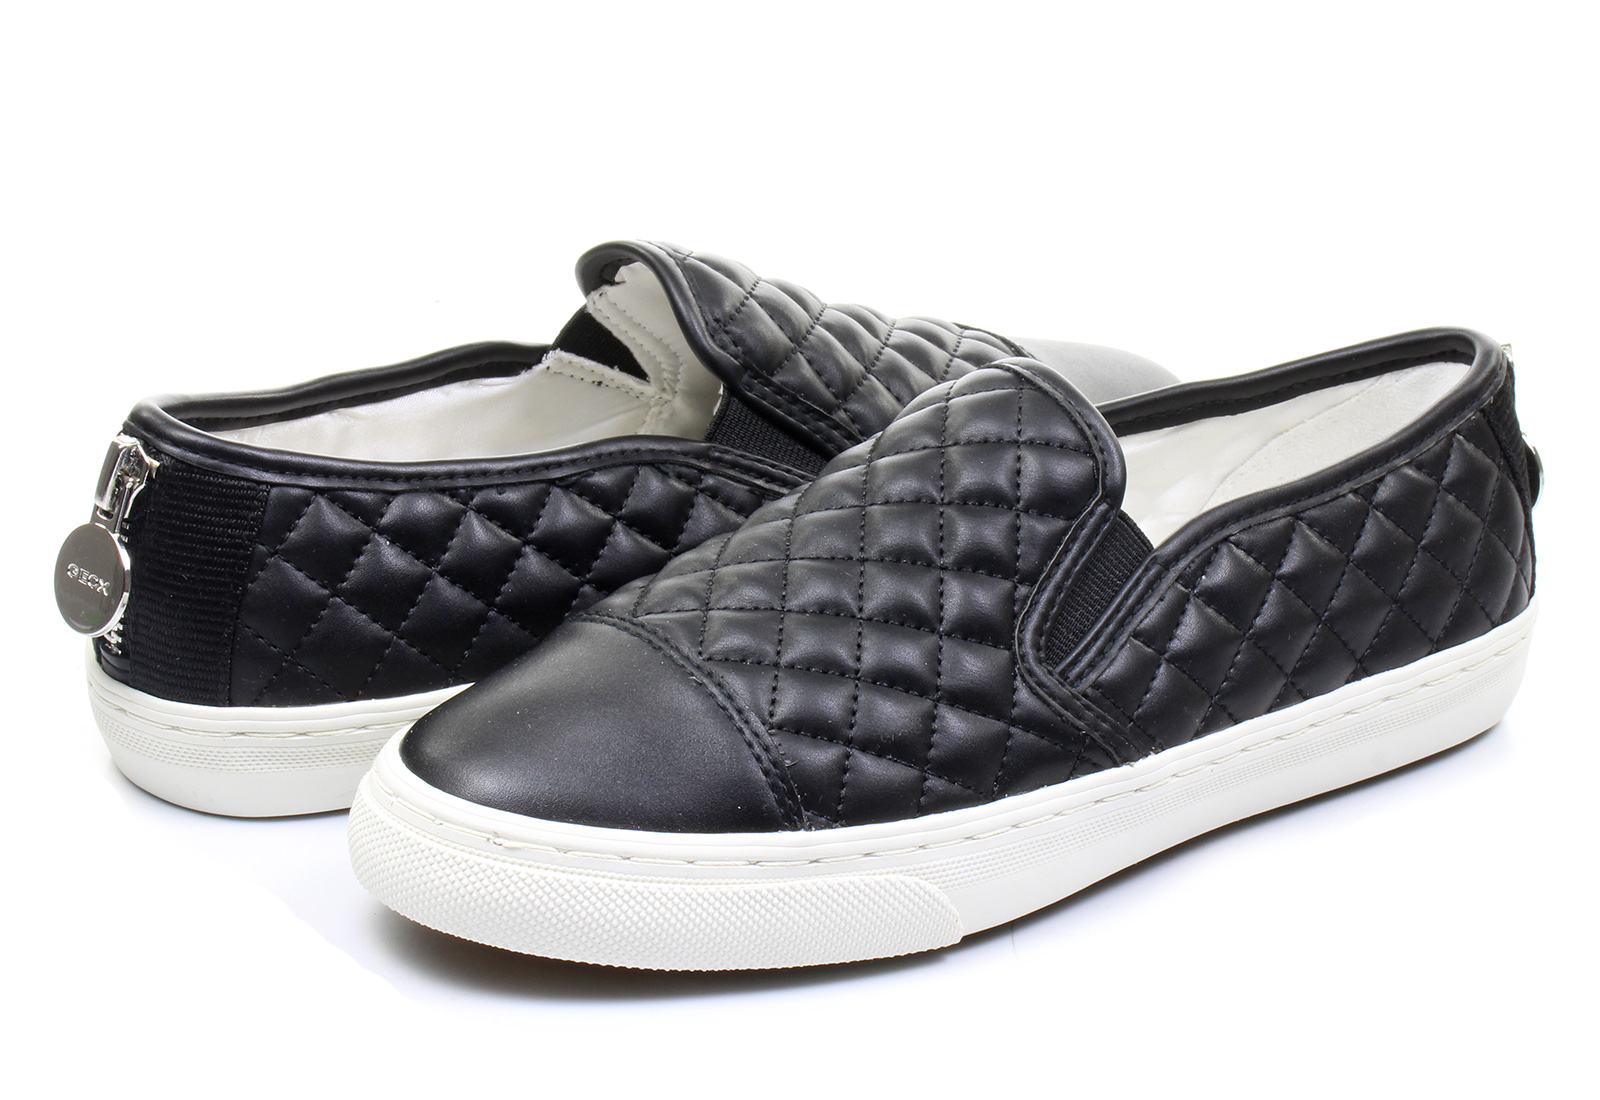 Geox Shoes New Club Slip On 58c 00bc 9999 Online